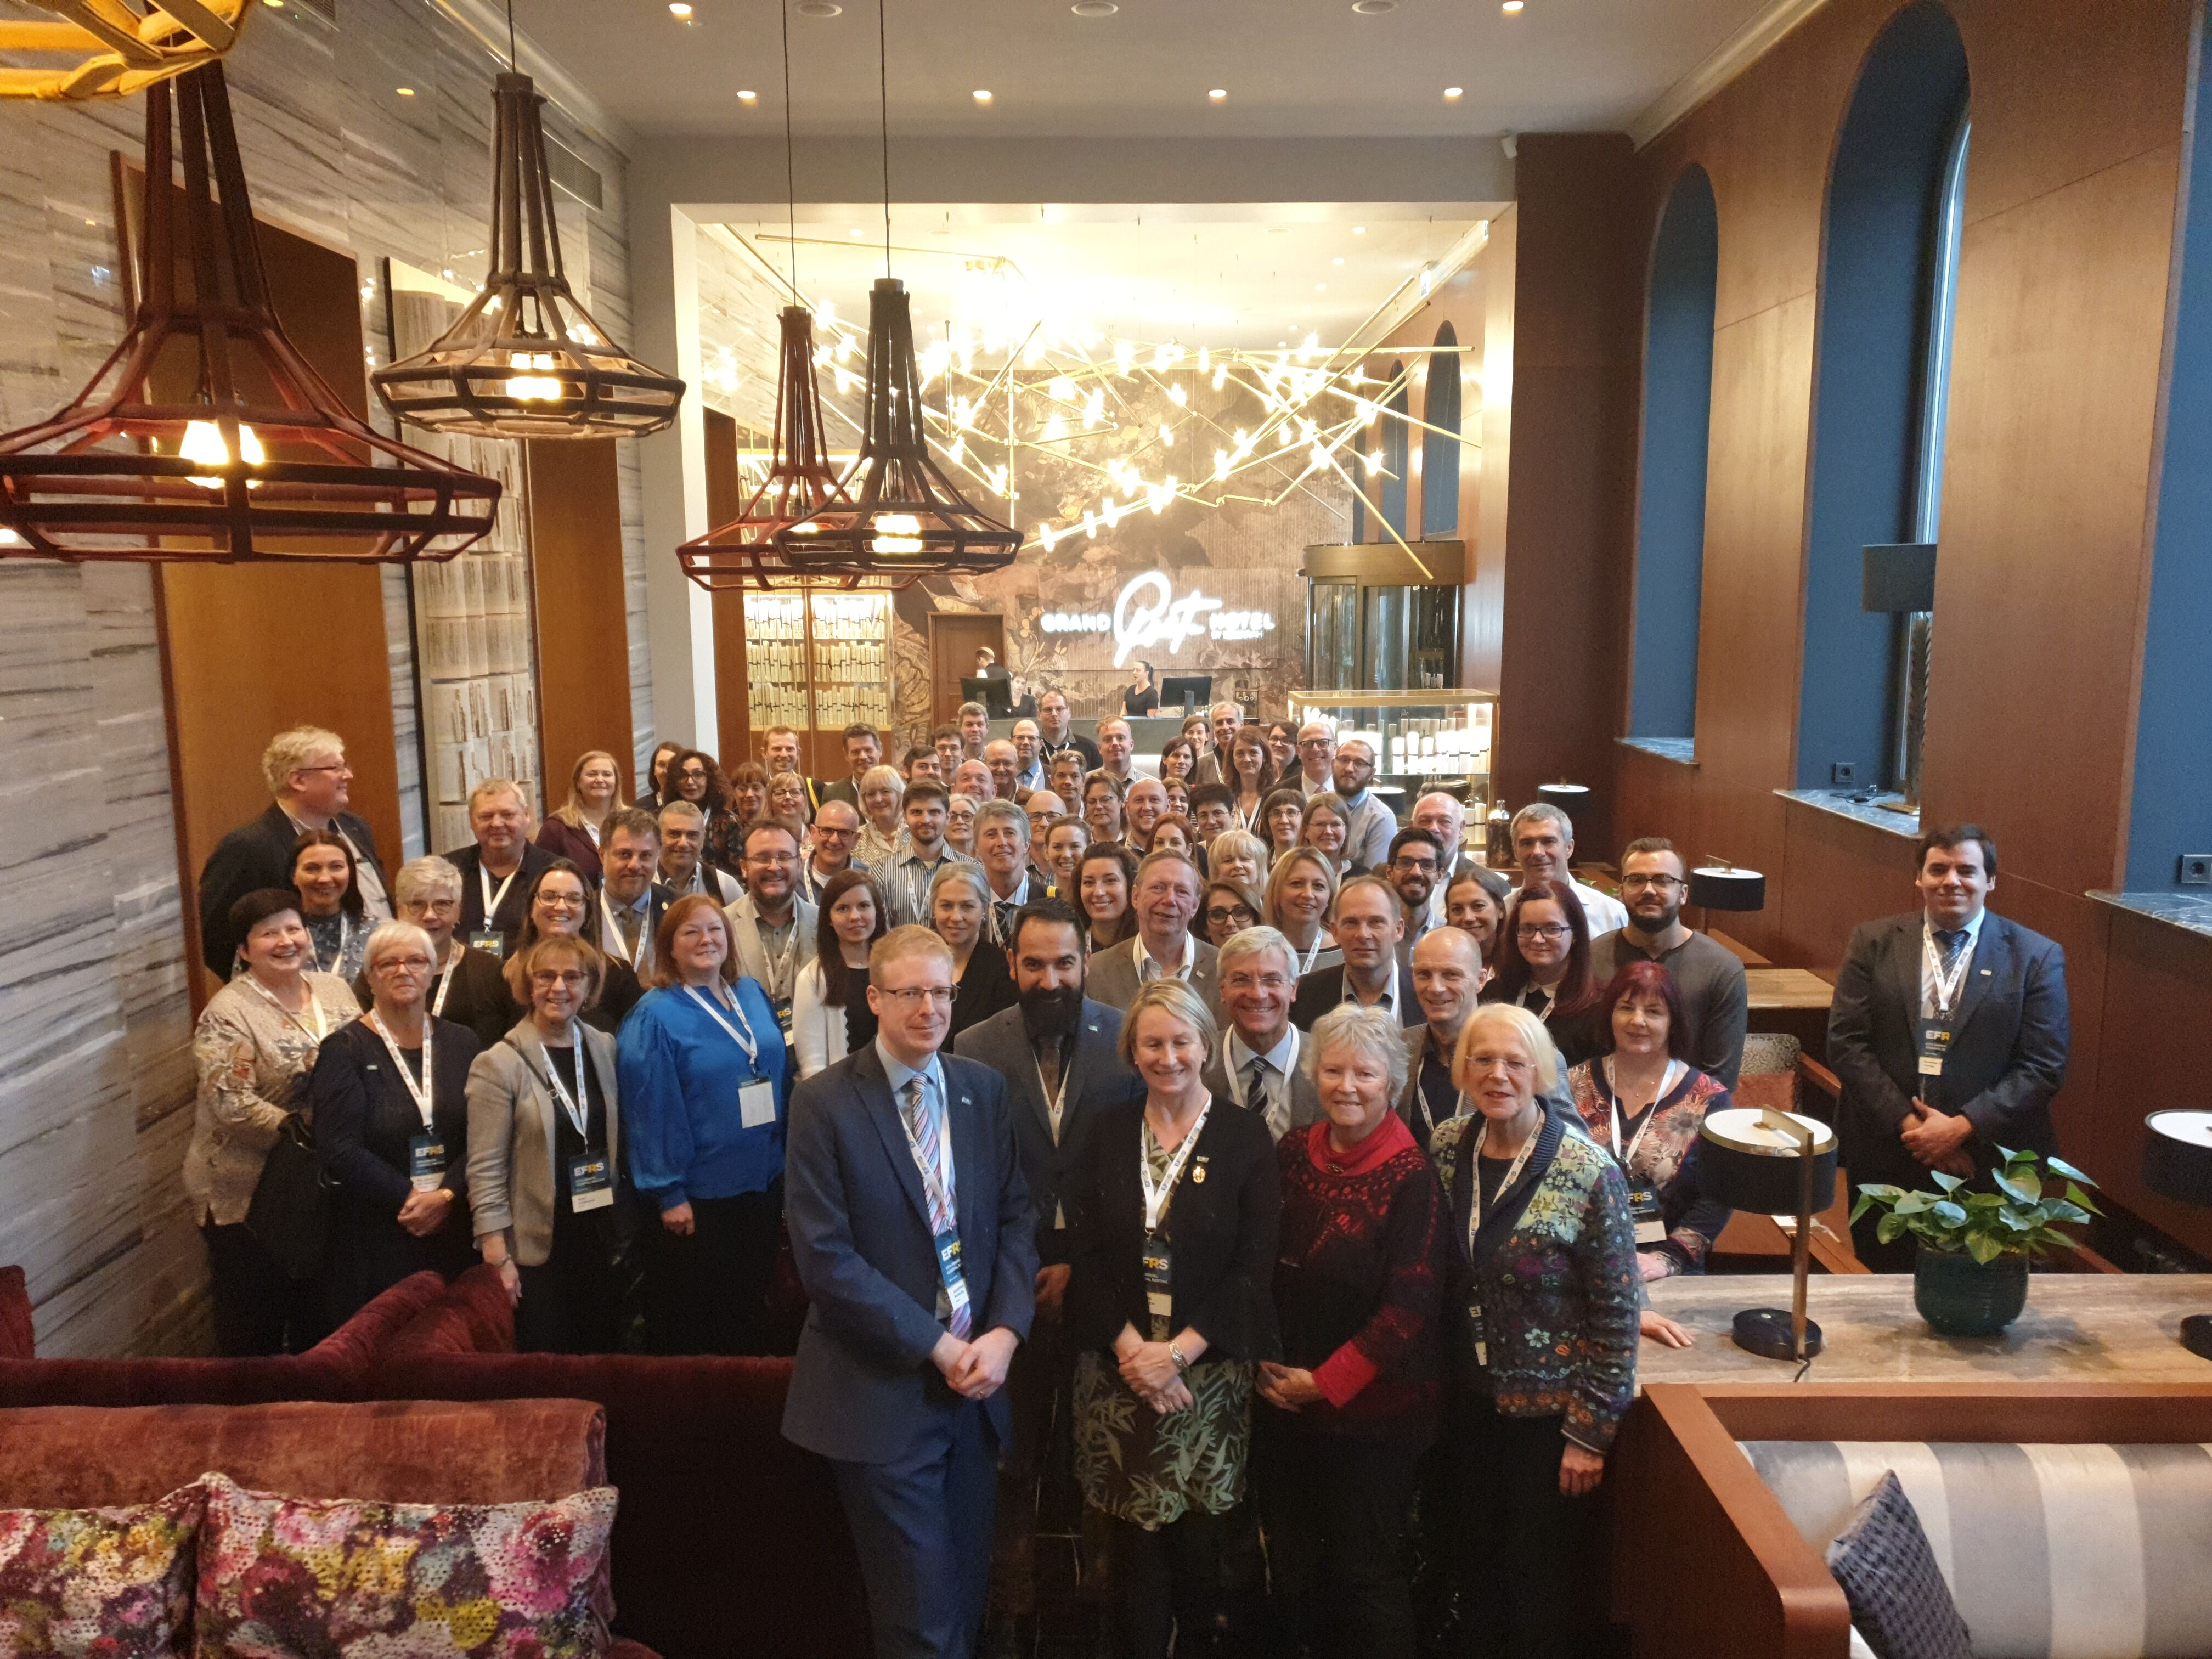 Novedades del Annual General Meeting (AGM) del European Federation of Radiographers Society EFRS